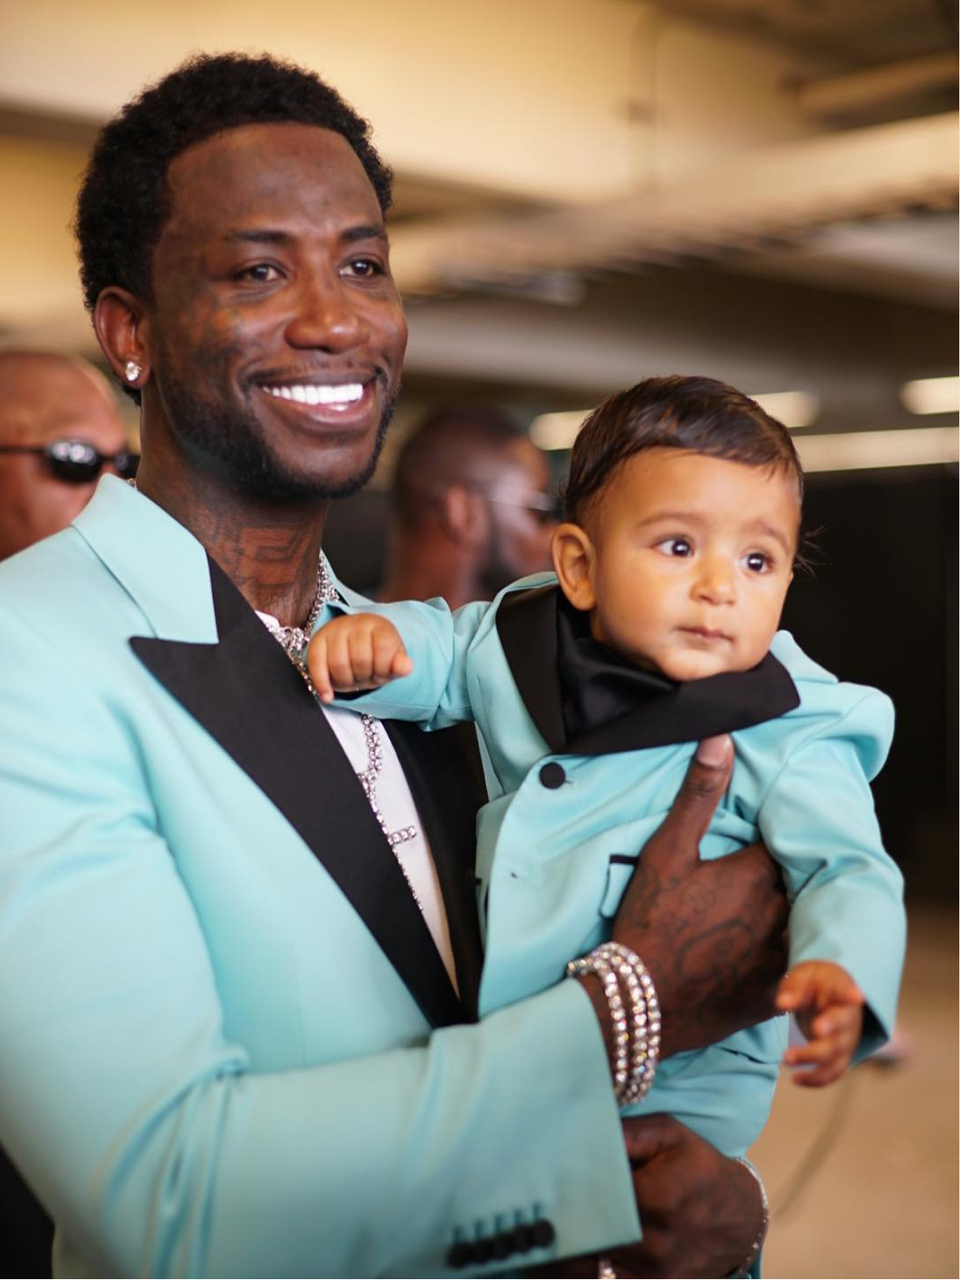 Gucci Mane and Asahd Khaled Wear Dapper Matching Tuxedos to BET Awards